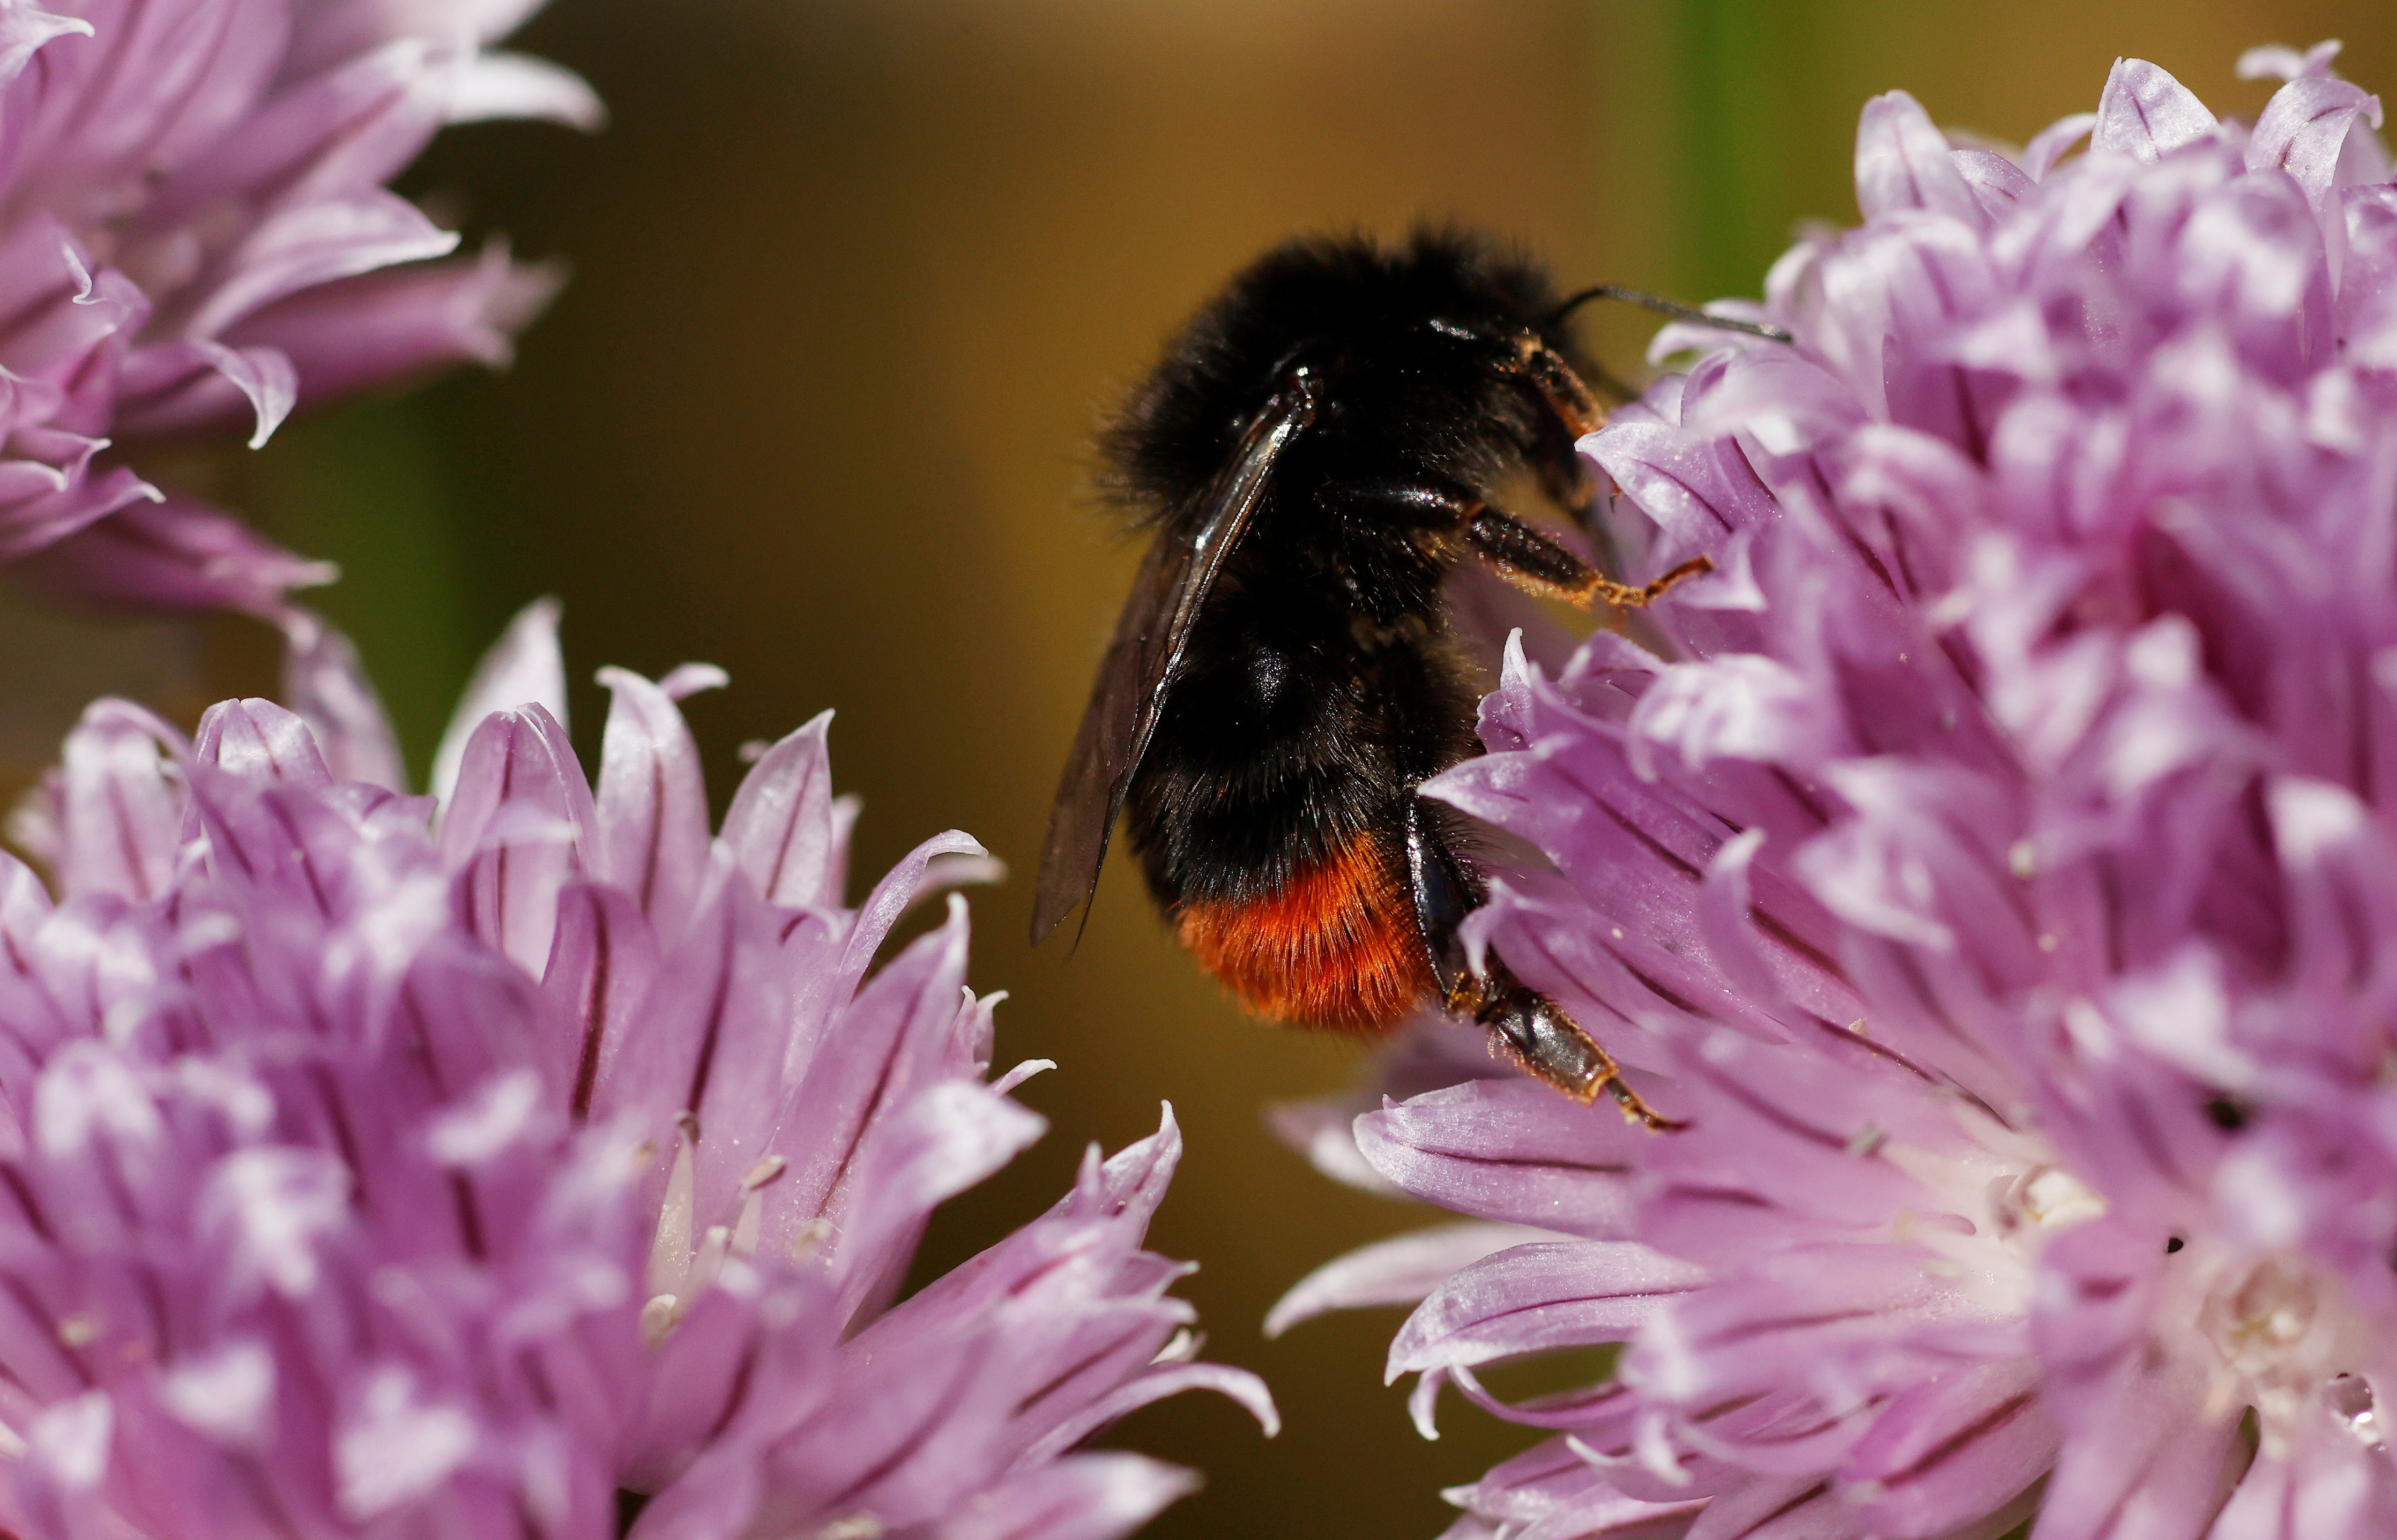 A Red-tailed bumblebee collects pollen from a flower in a garden in Manchester, Britain, May 31, 2021. REUTERS/Phil Noble - RC21RN9D4JEG